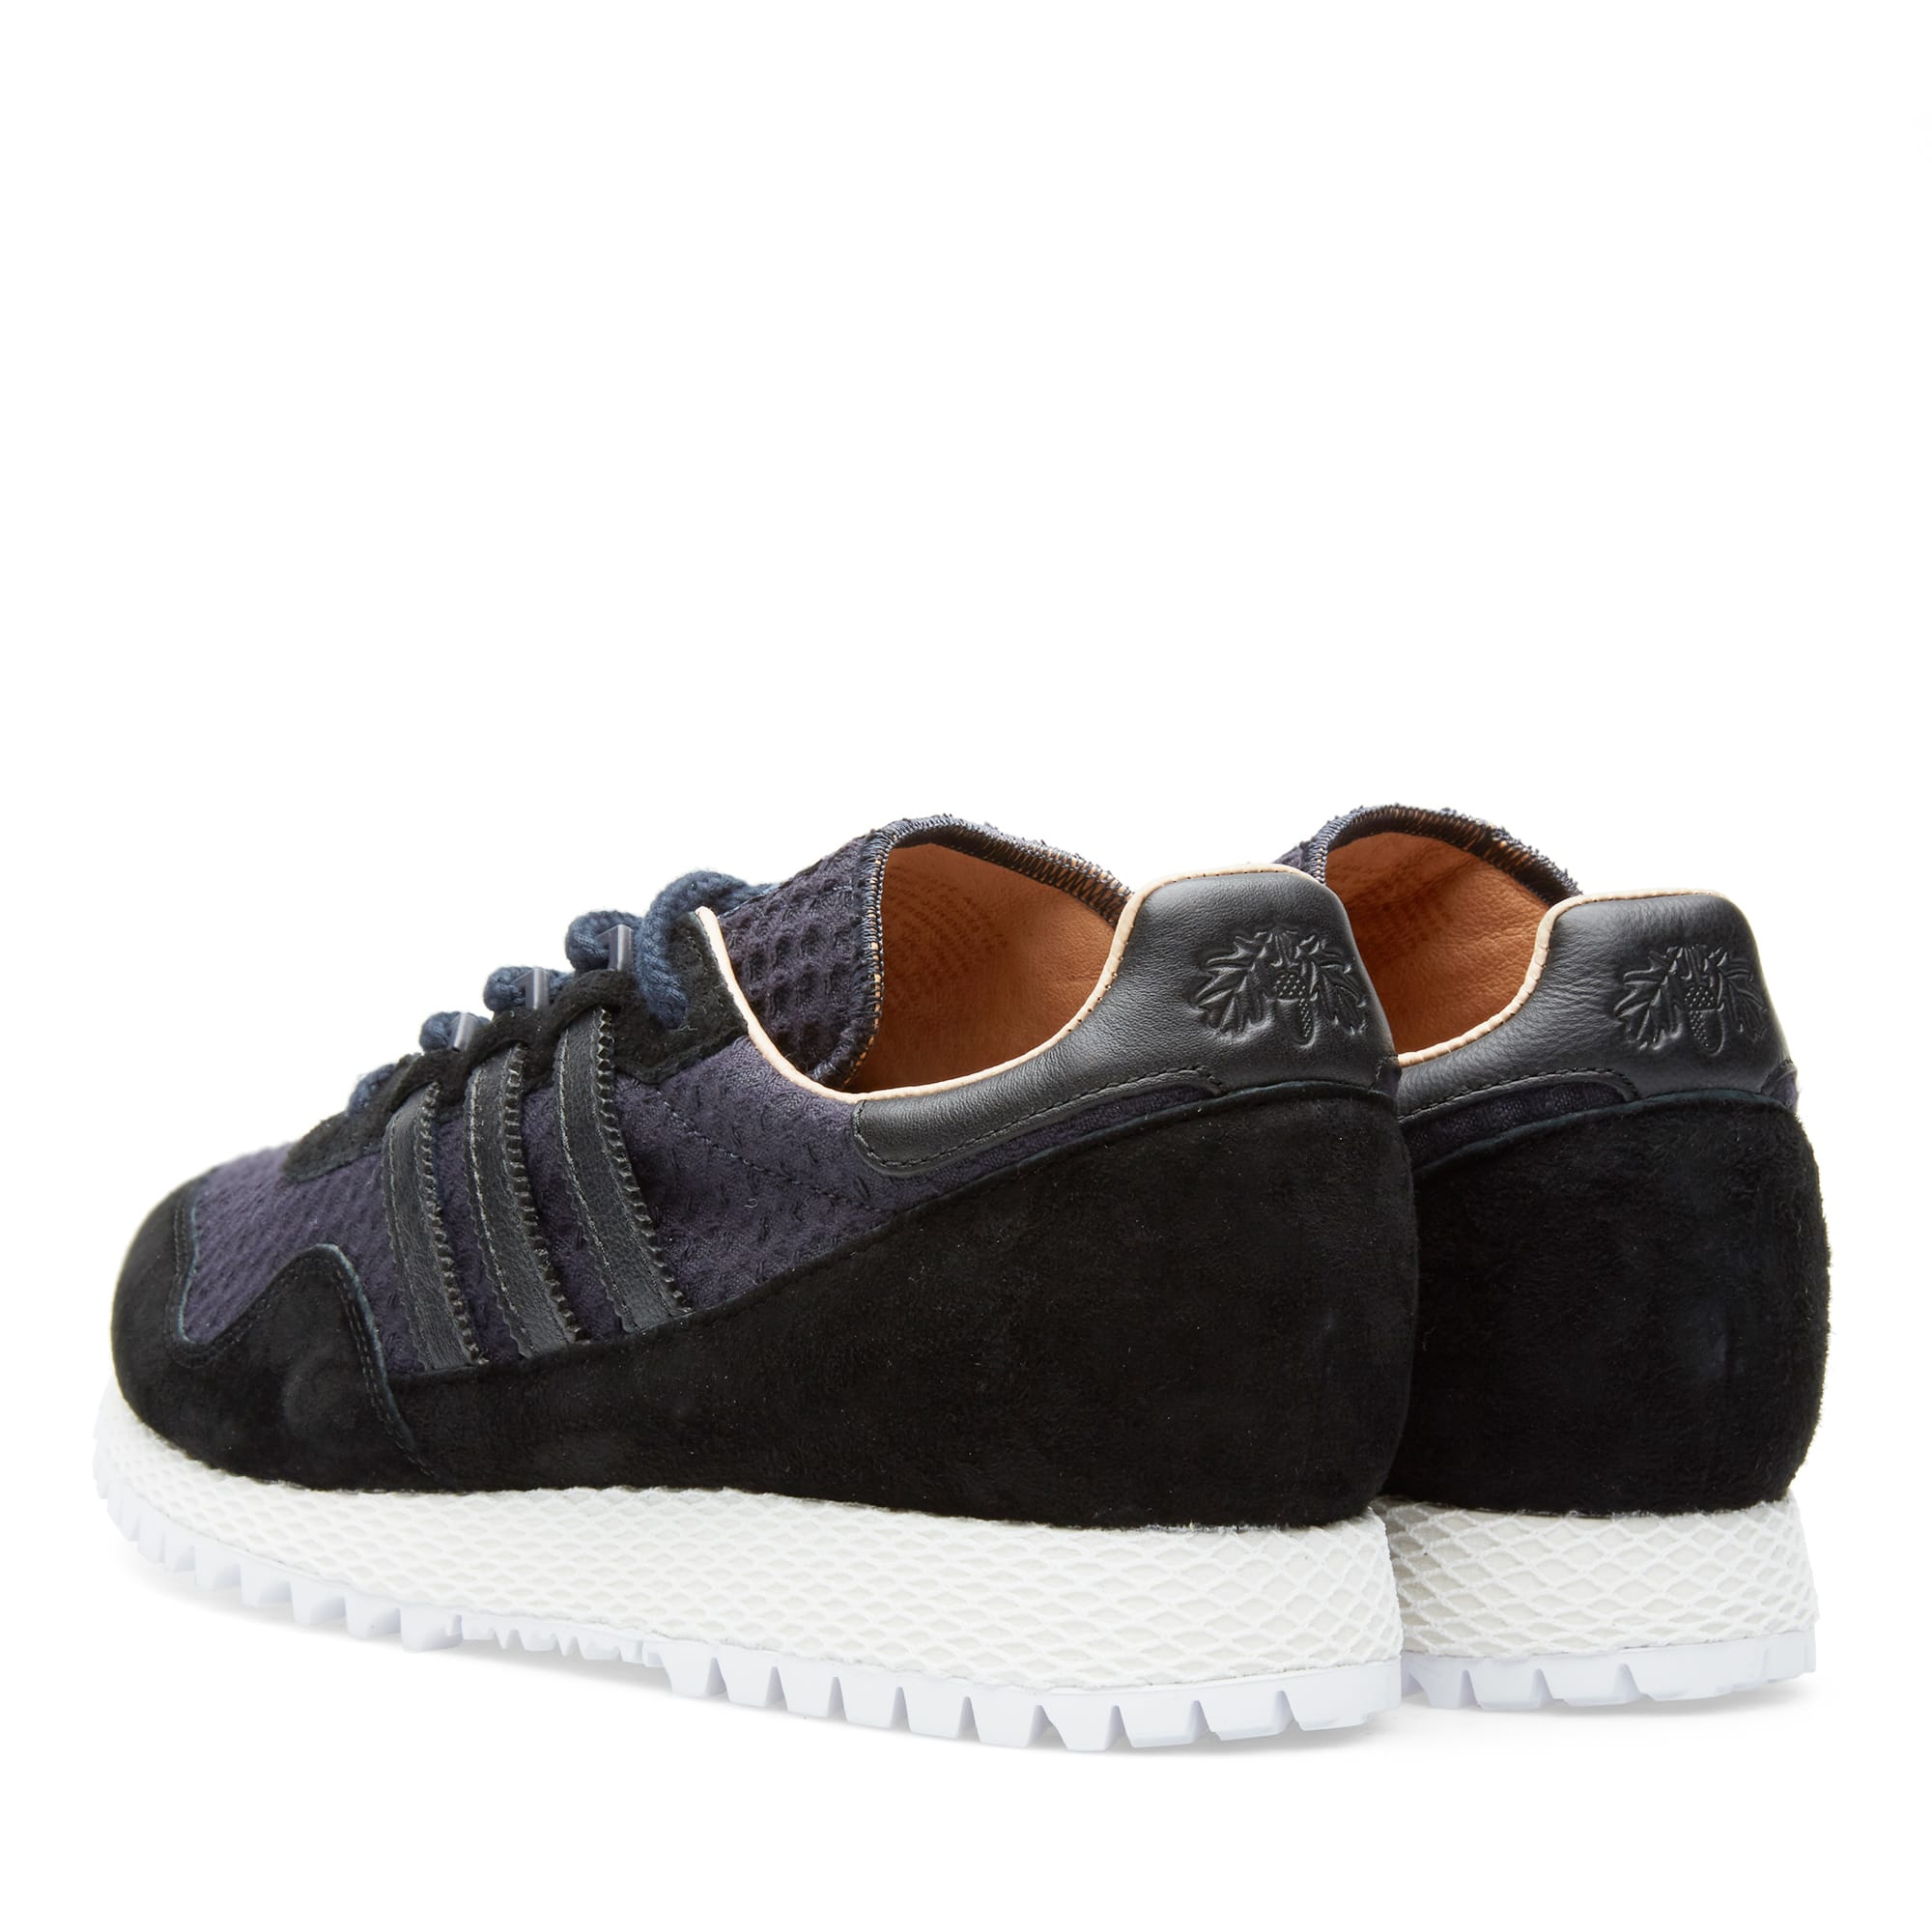 8f6fc7fab Adidas Consortium x A Kind of Guise New York Night Navy